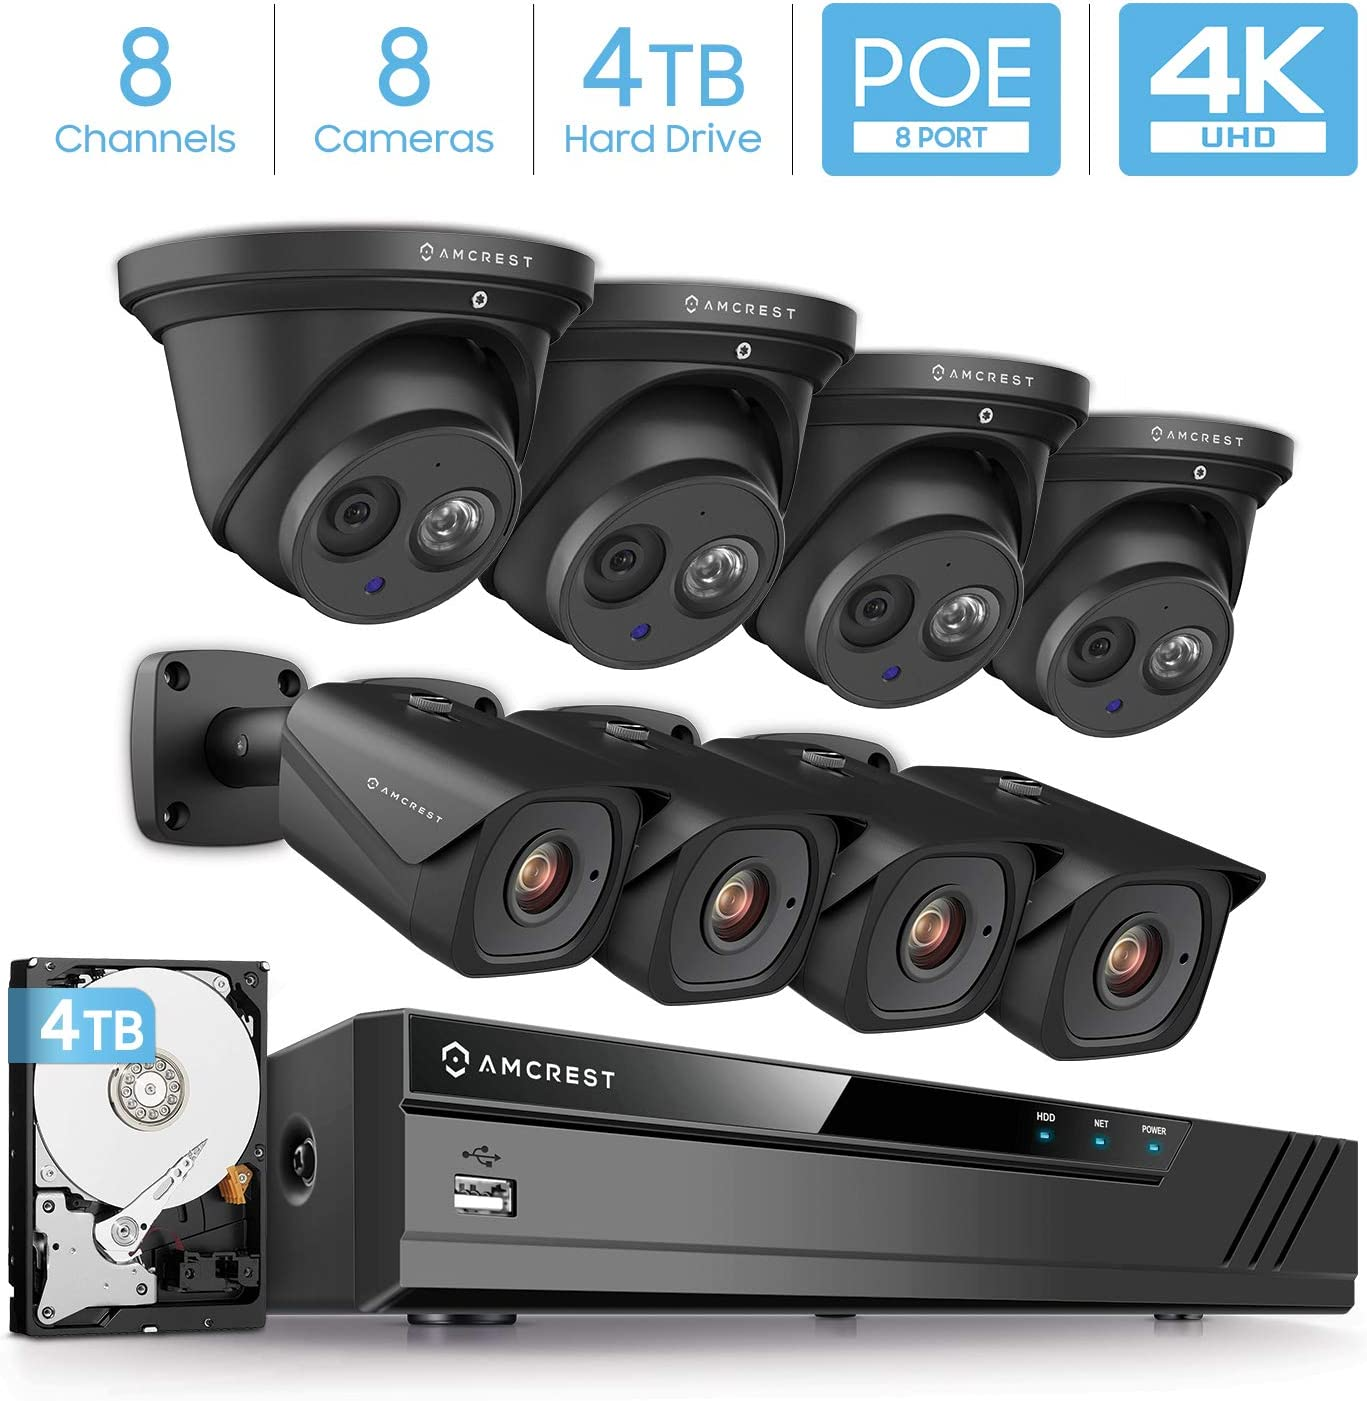 Amcrest 4K Security Camera System w 4K 8CH PoE NVR, 8 x 4K 8-Megapixel IP67 Weatherproof Metal Turret Dome Bullet POE IP Cameras, Pre-Installed 4TB Hard Drive, NV4108E-T2499EB4-2496EB4-4TB